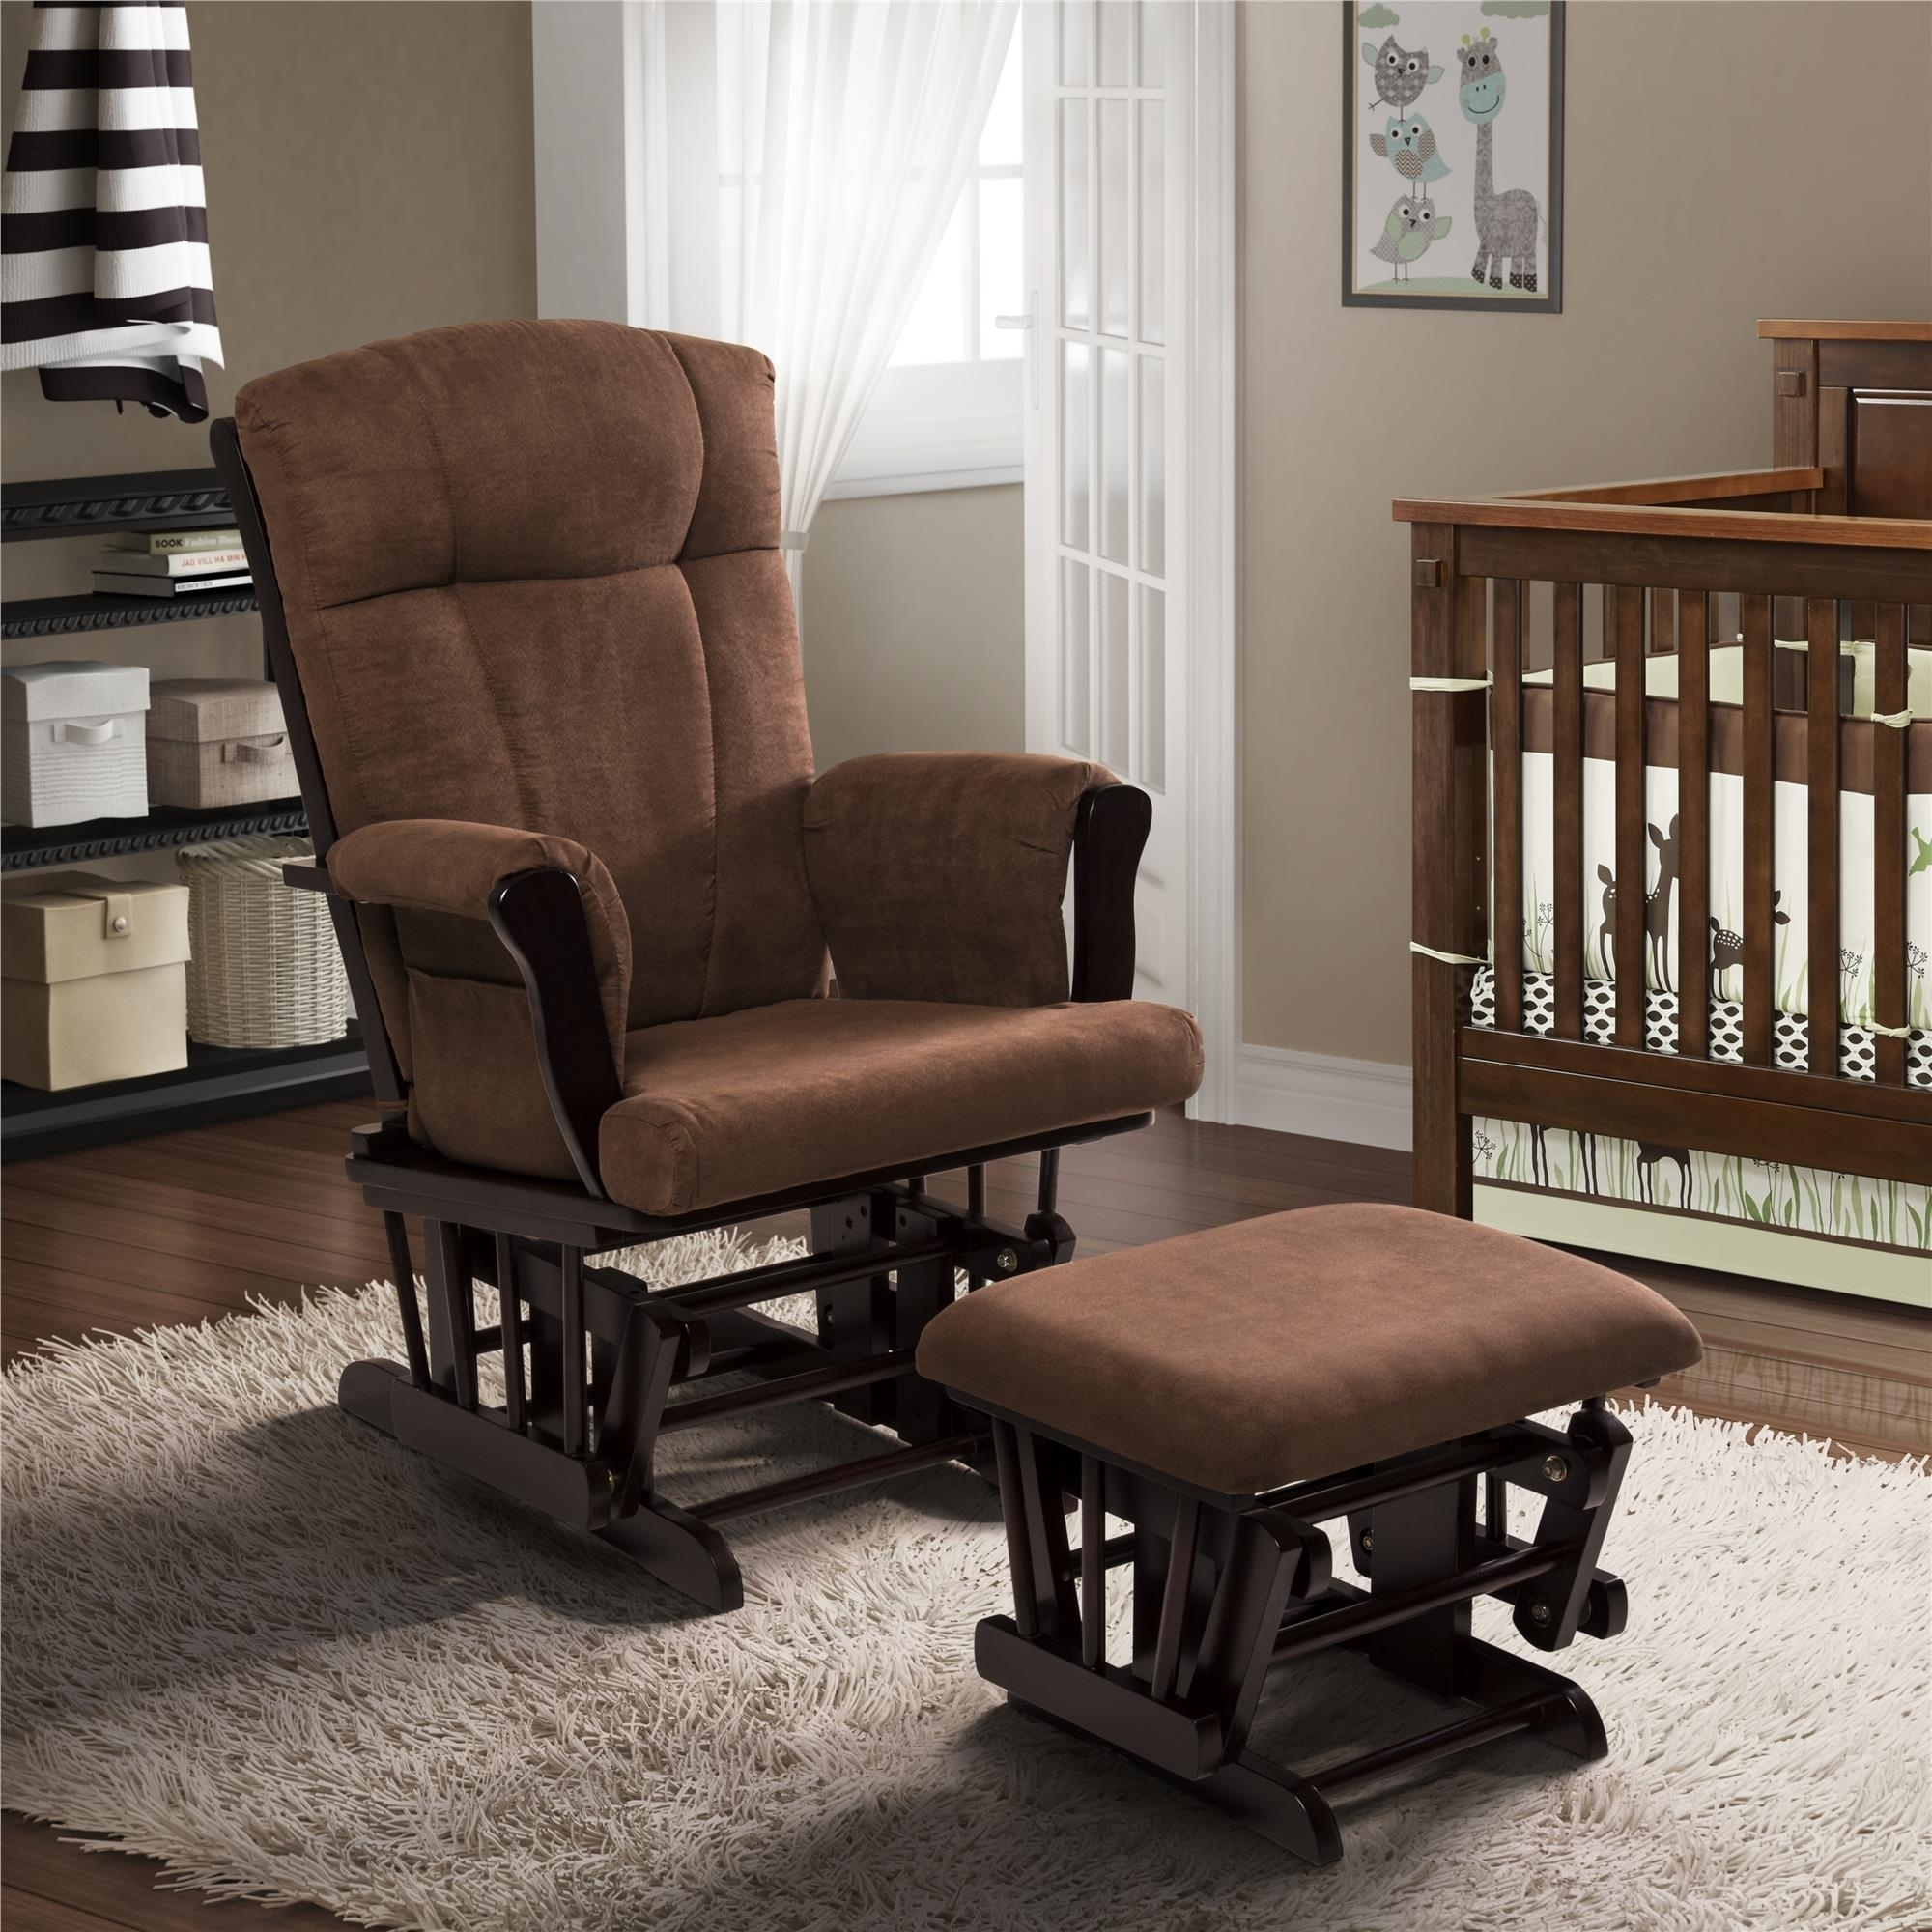 Glider Rocking Chair And Ottoman Stylish Dorel Living Ba Relax Regarding Gliders With Ottoman (View 6 of 10)